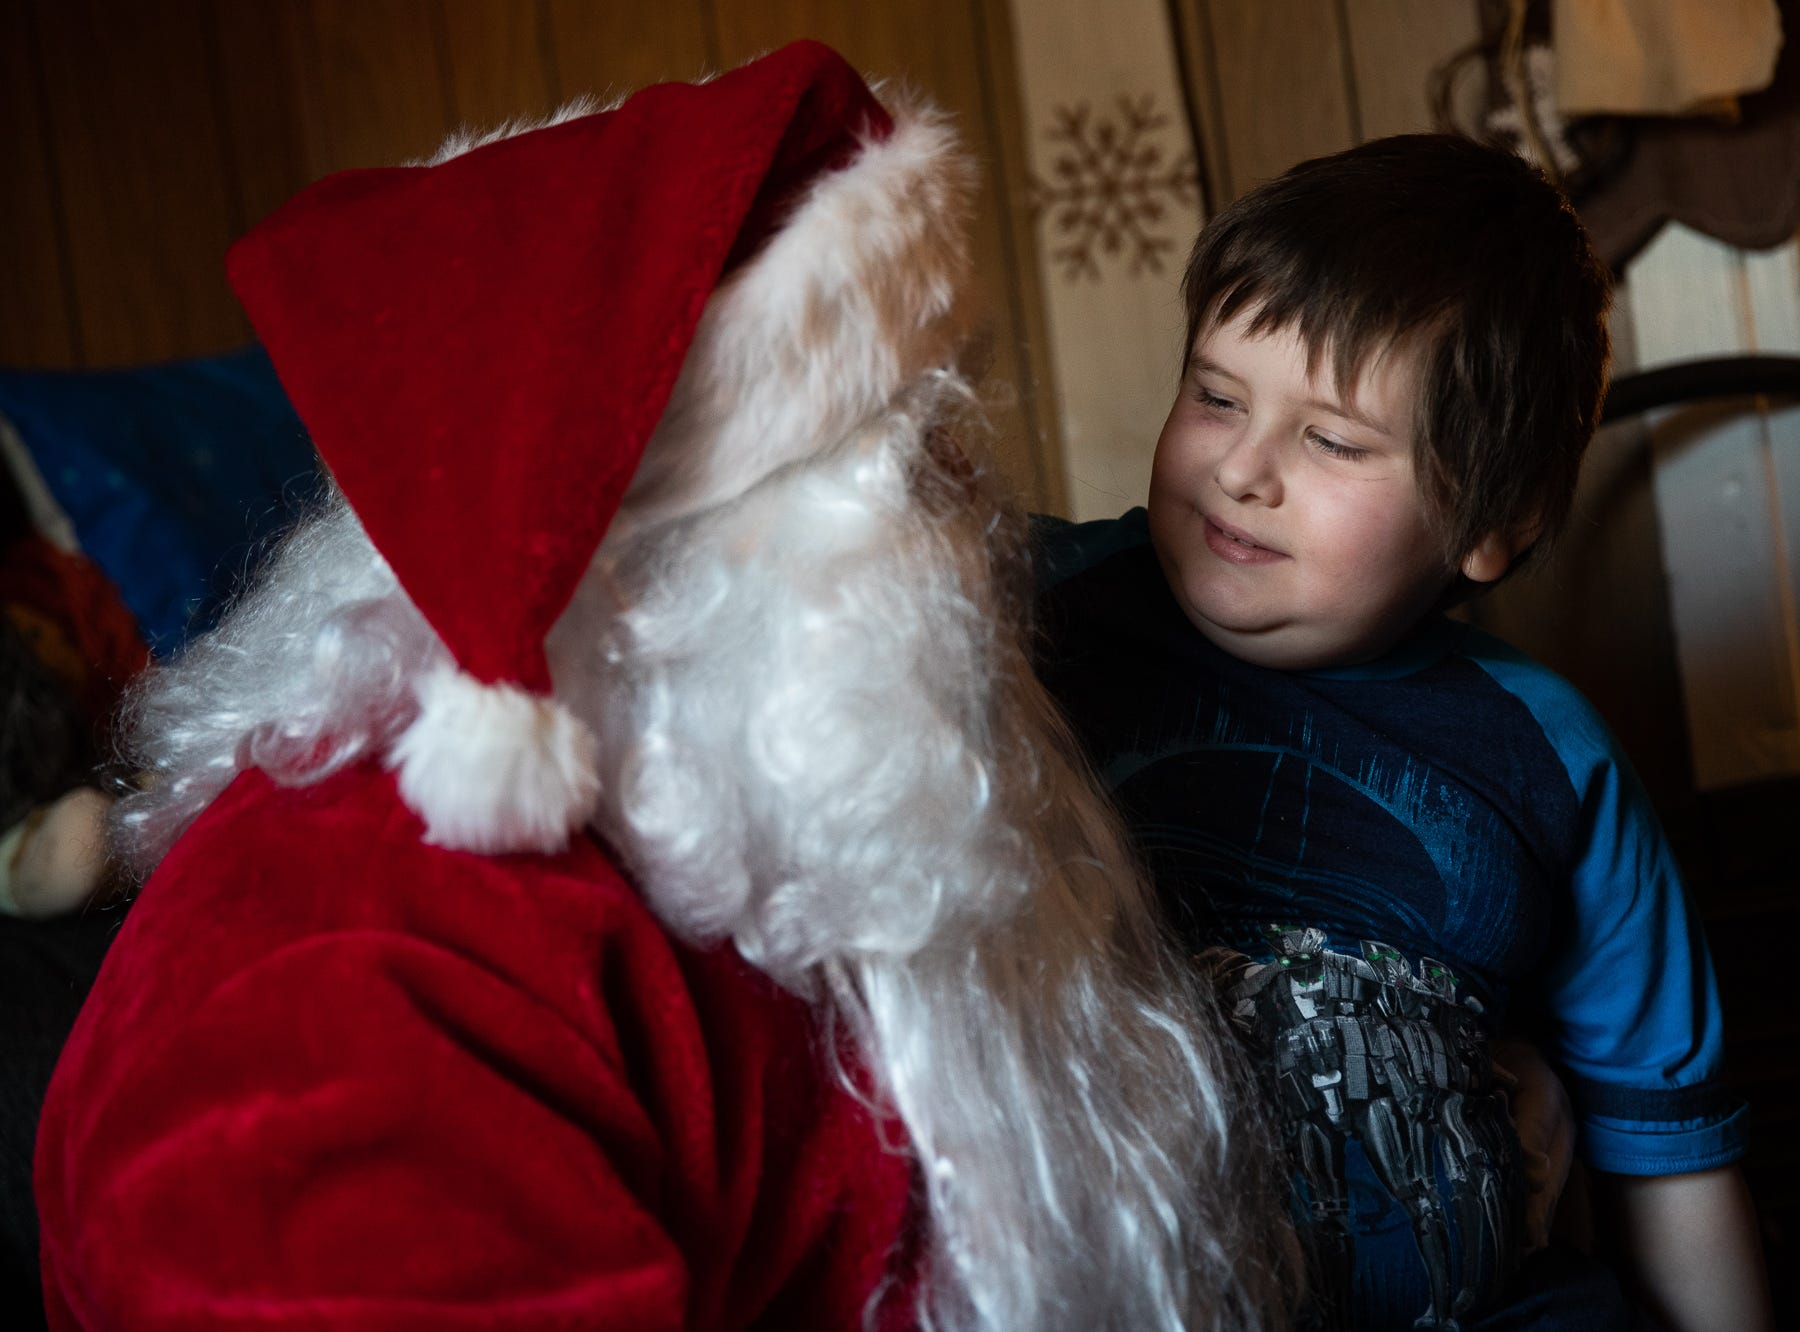 Raphael, 8, sits on the lap of Santa, played by firefighter Wayne Reid, during the S.A.V.E.S Project Santa, Saturday, Dec. 22, 2018, in McSherrystown Borough. The S.A.V.E.S Project Santa donated food, toys, and clothing to 12 local families in need.